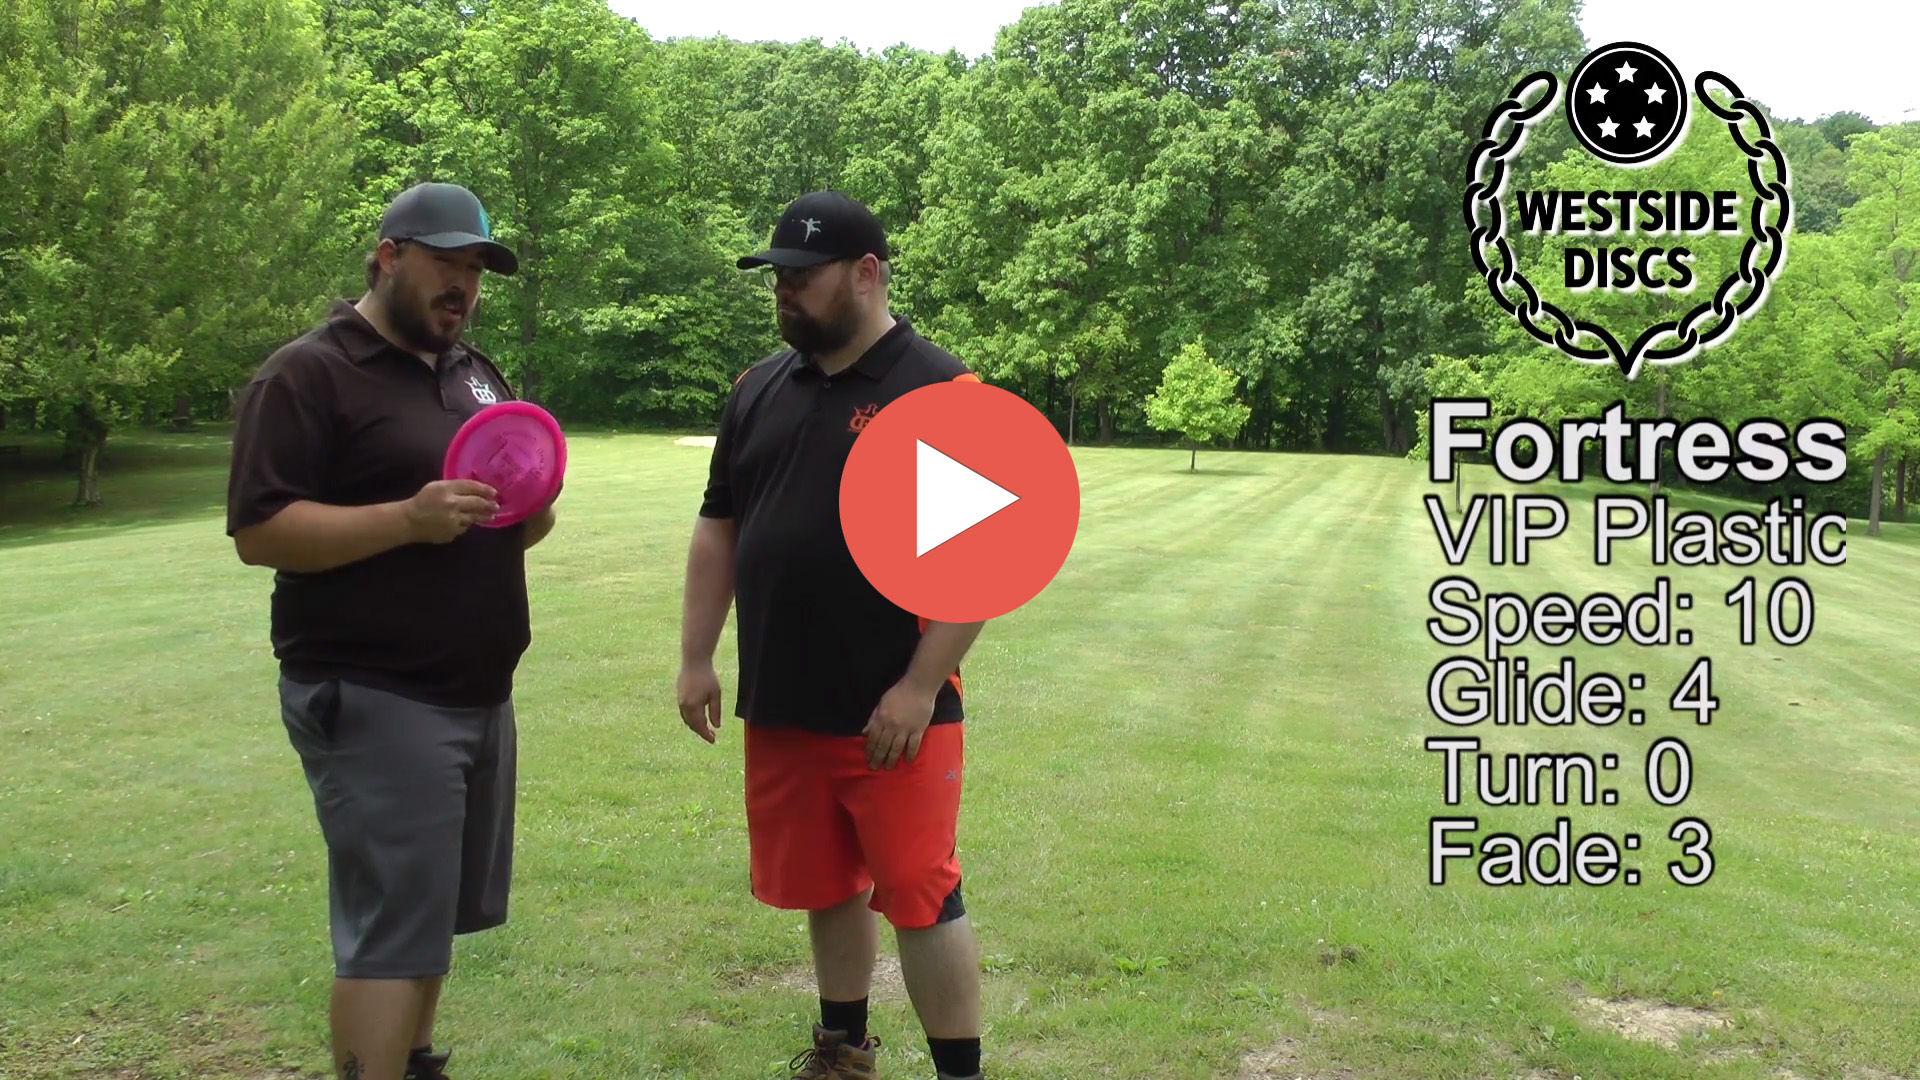 Westside Discs VIP Fortress Disc Review